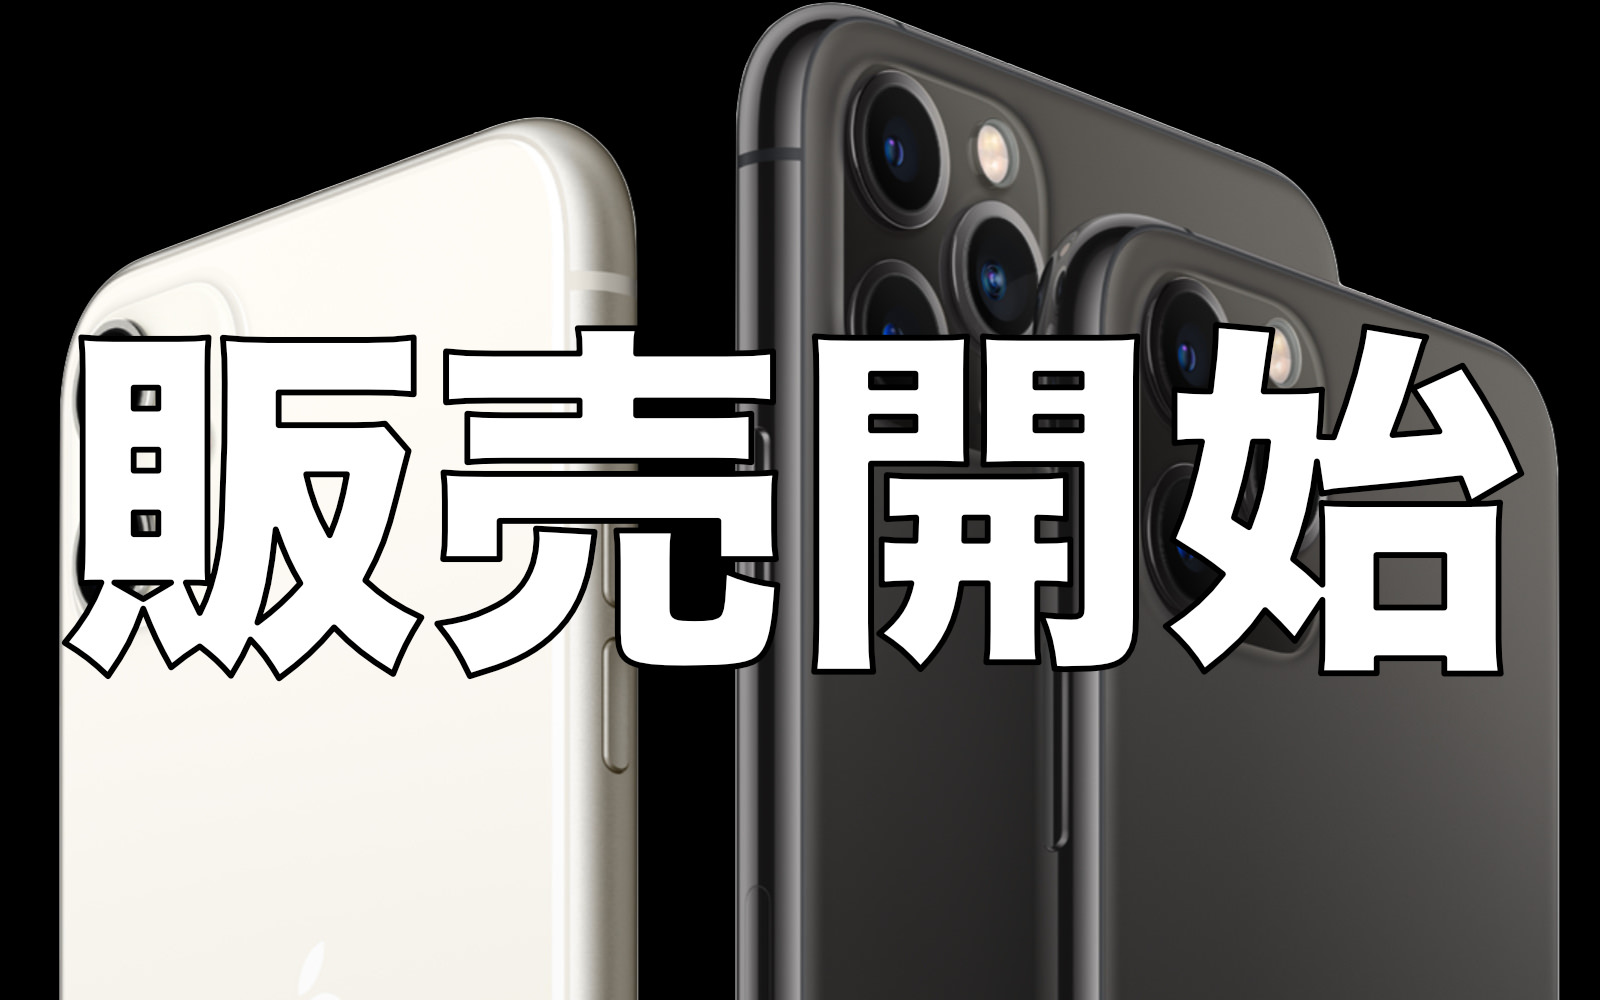 Iphone11 series now on sale